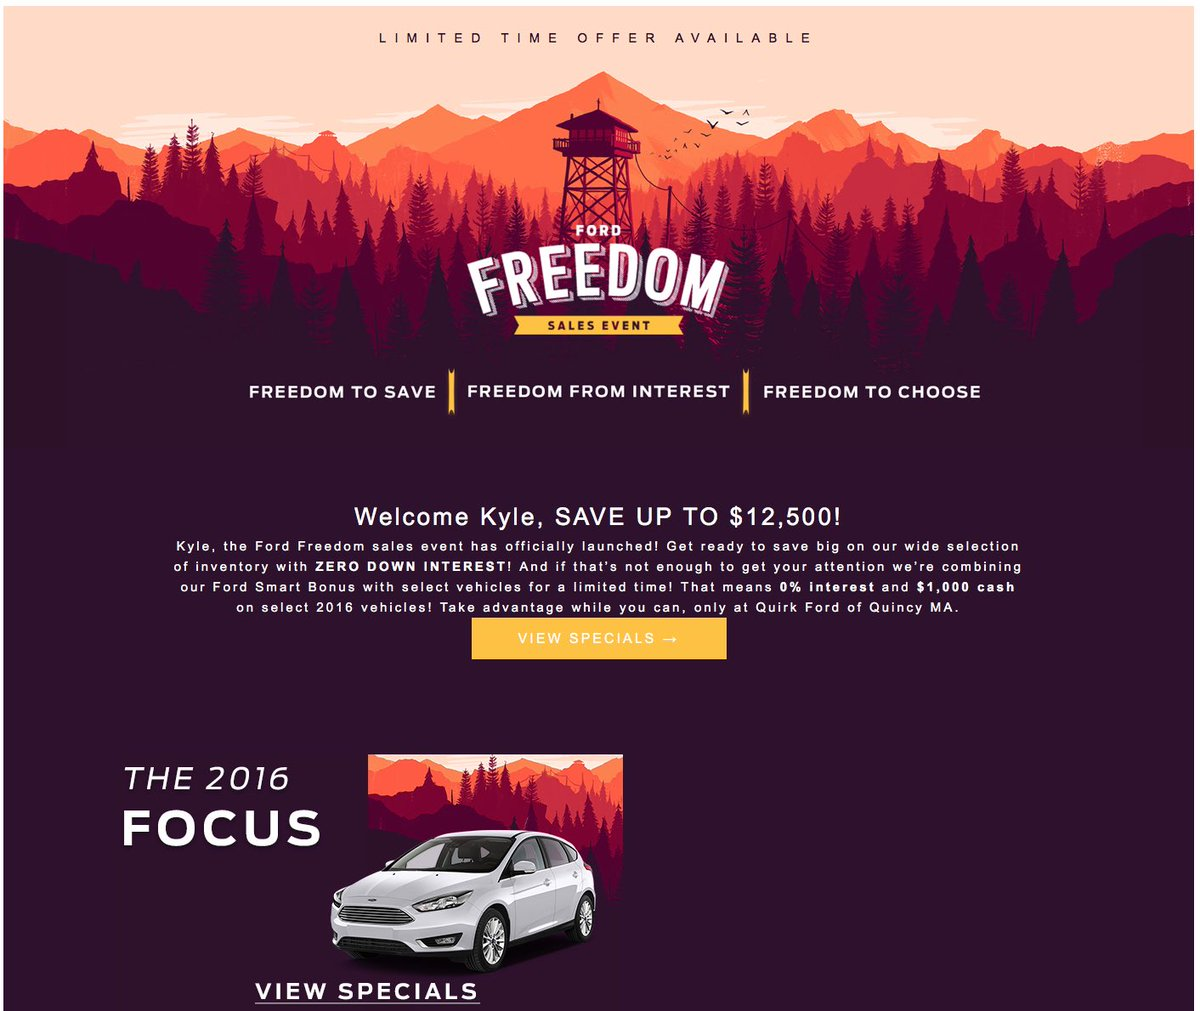 Ford dealership uses art from Firewatch for ad -- without permission, of course [UPDATE] - ucabal2.com